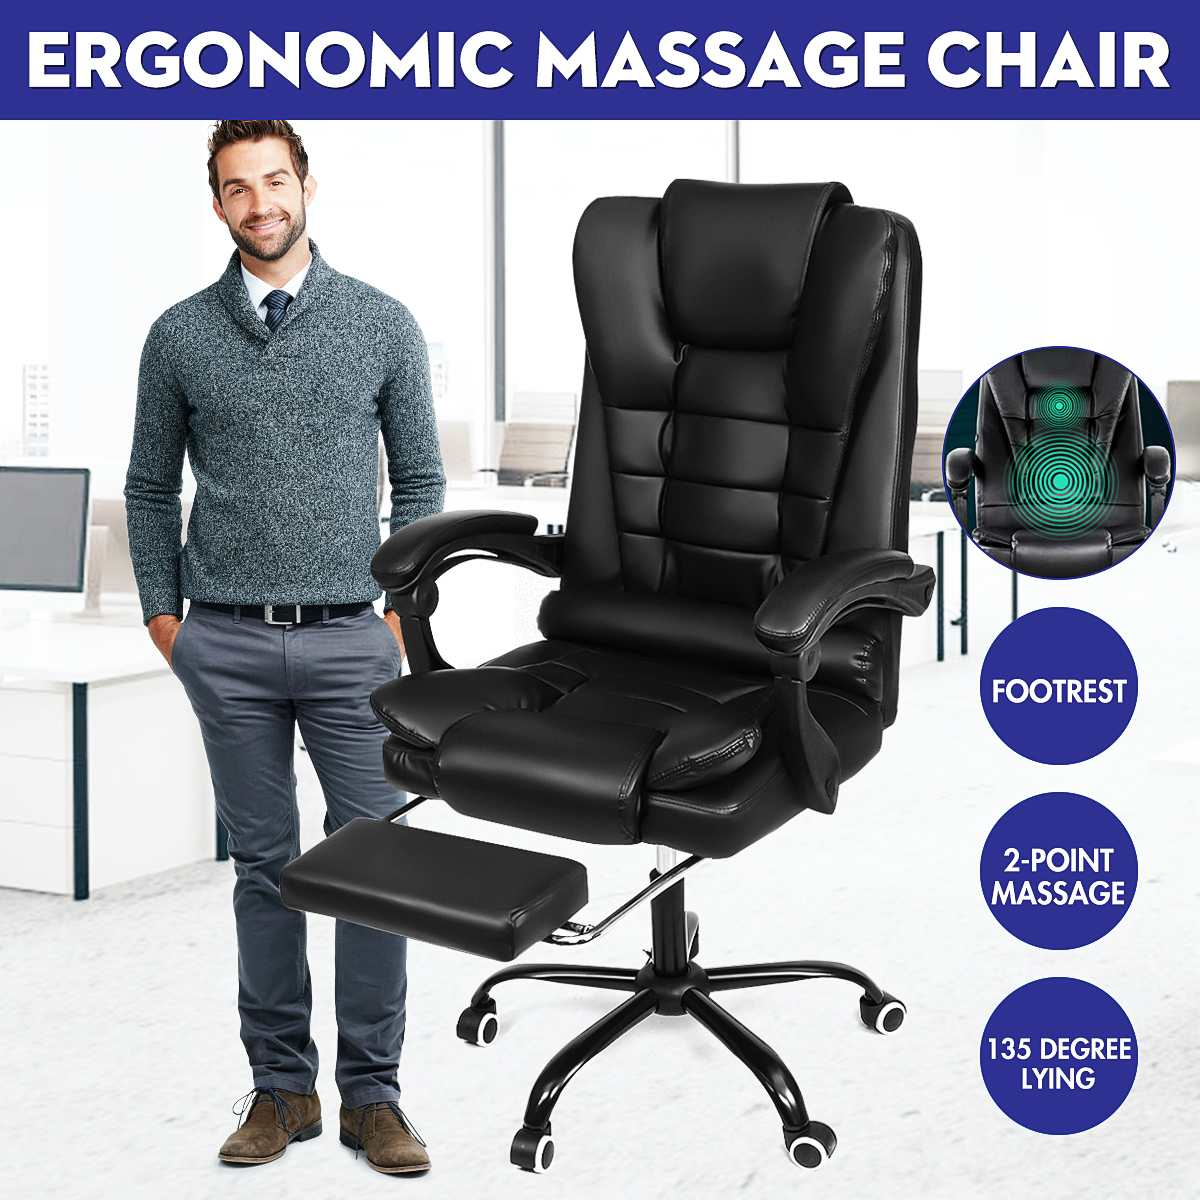 90°~135° Lying Massage Chair Household High Quality Office Gaming Computer Chair Ergonomic Reclining Gaming Chair Footrest